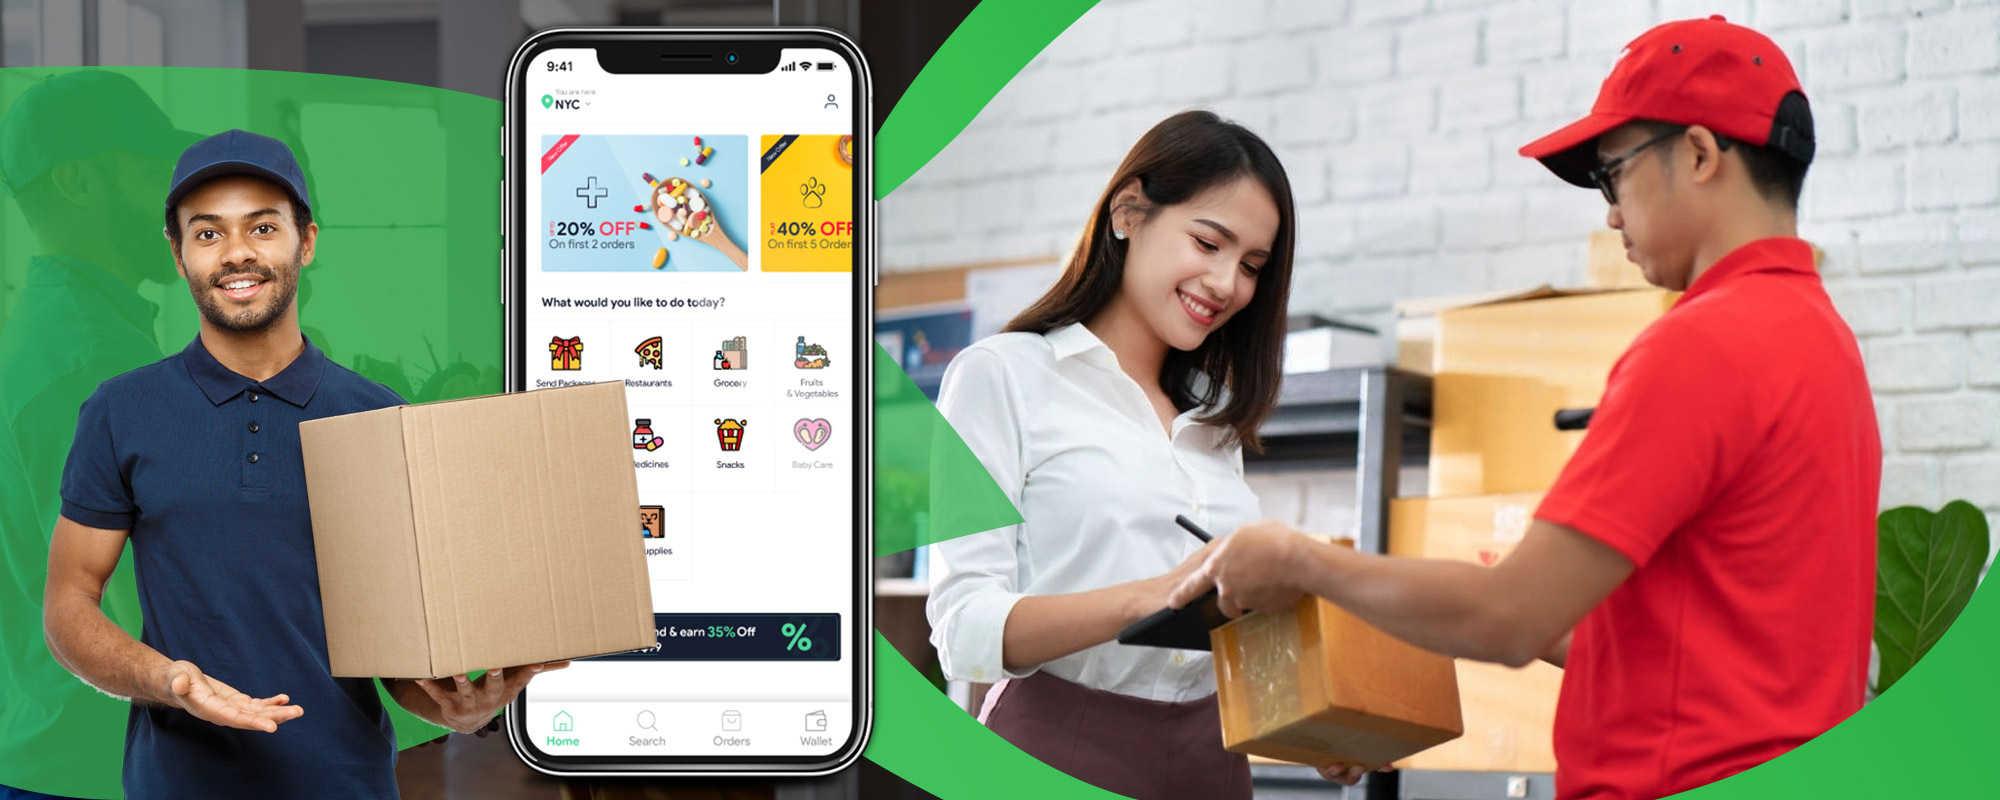 Delivery App COVID-19